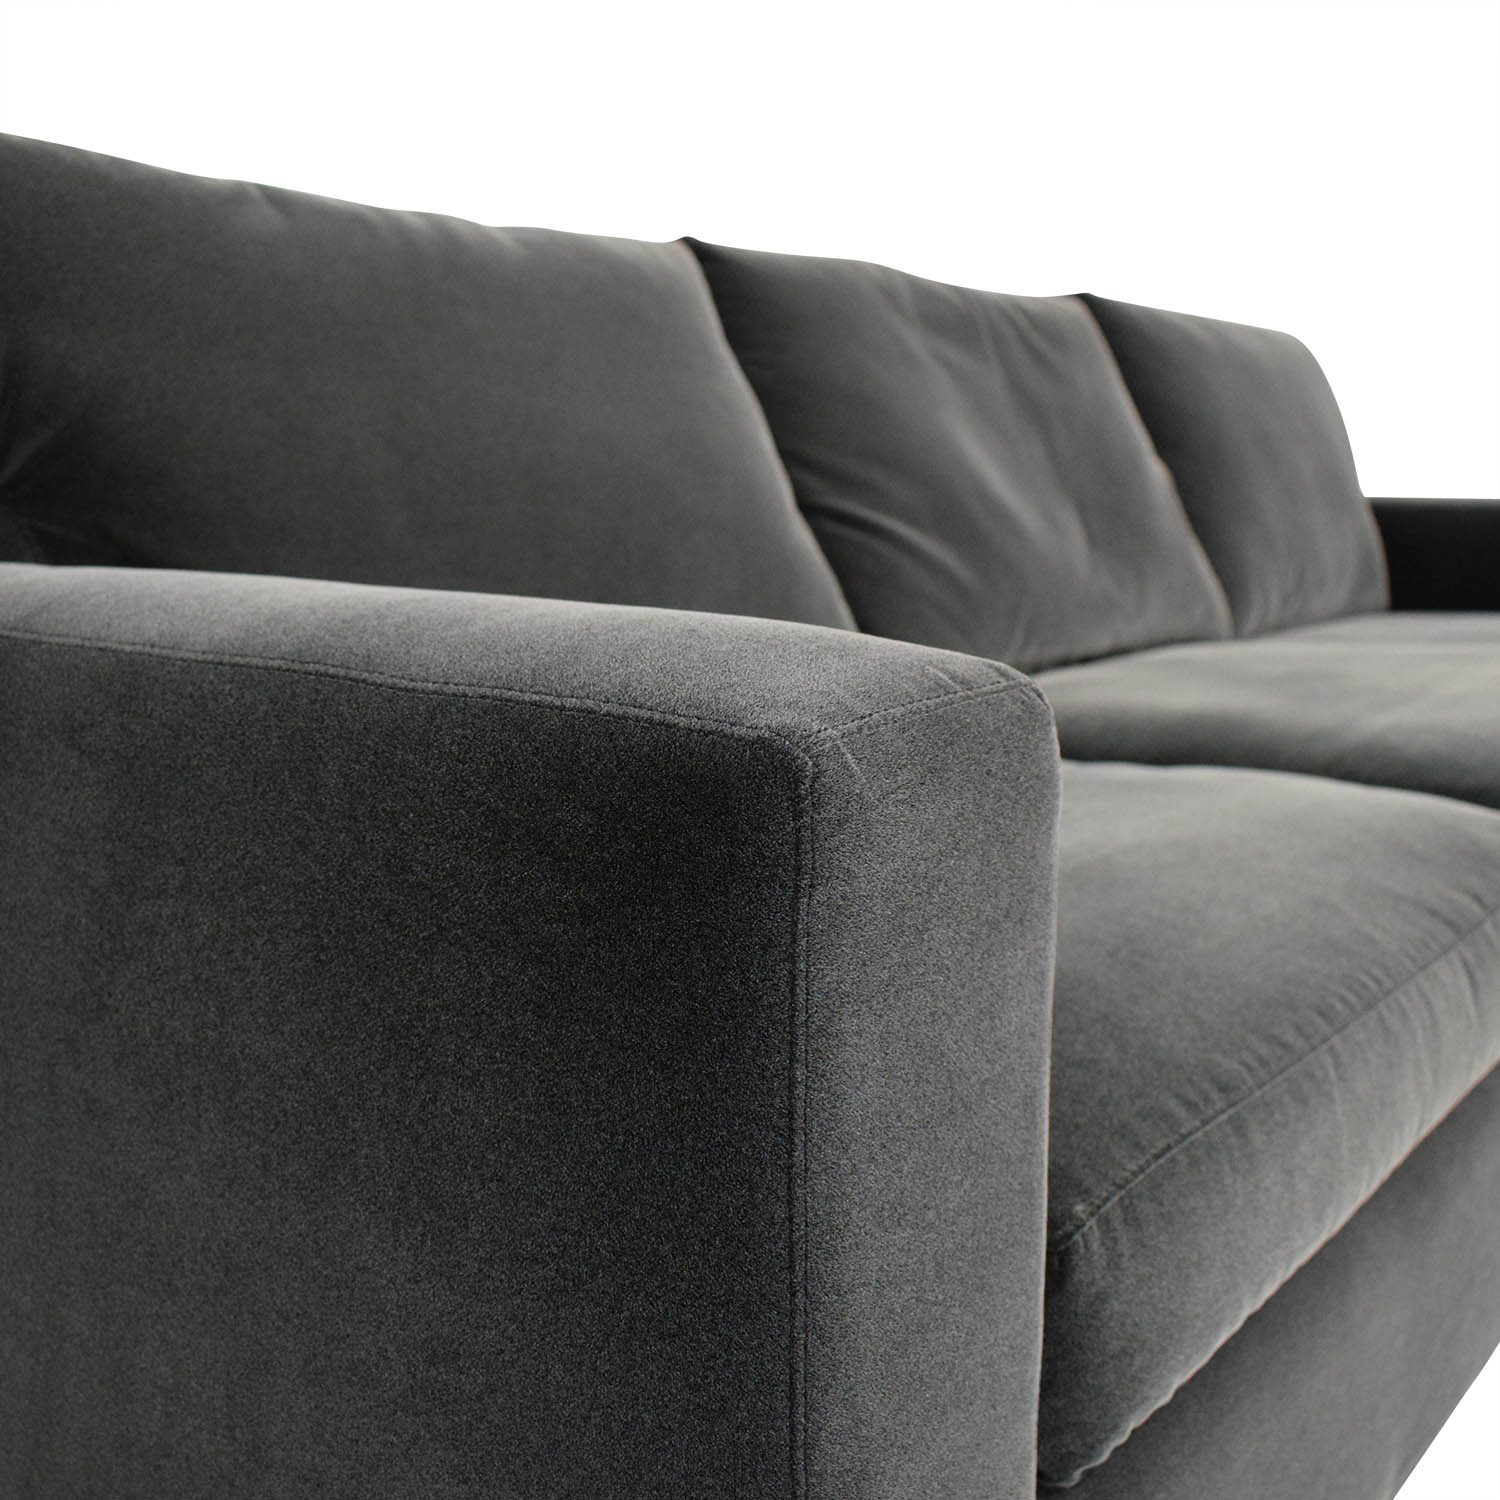 Crate & Barrel Crate & Barrel Axis Chaise Sectional Sofa Sofas